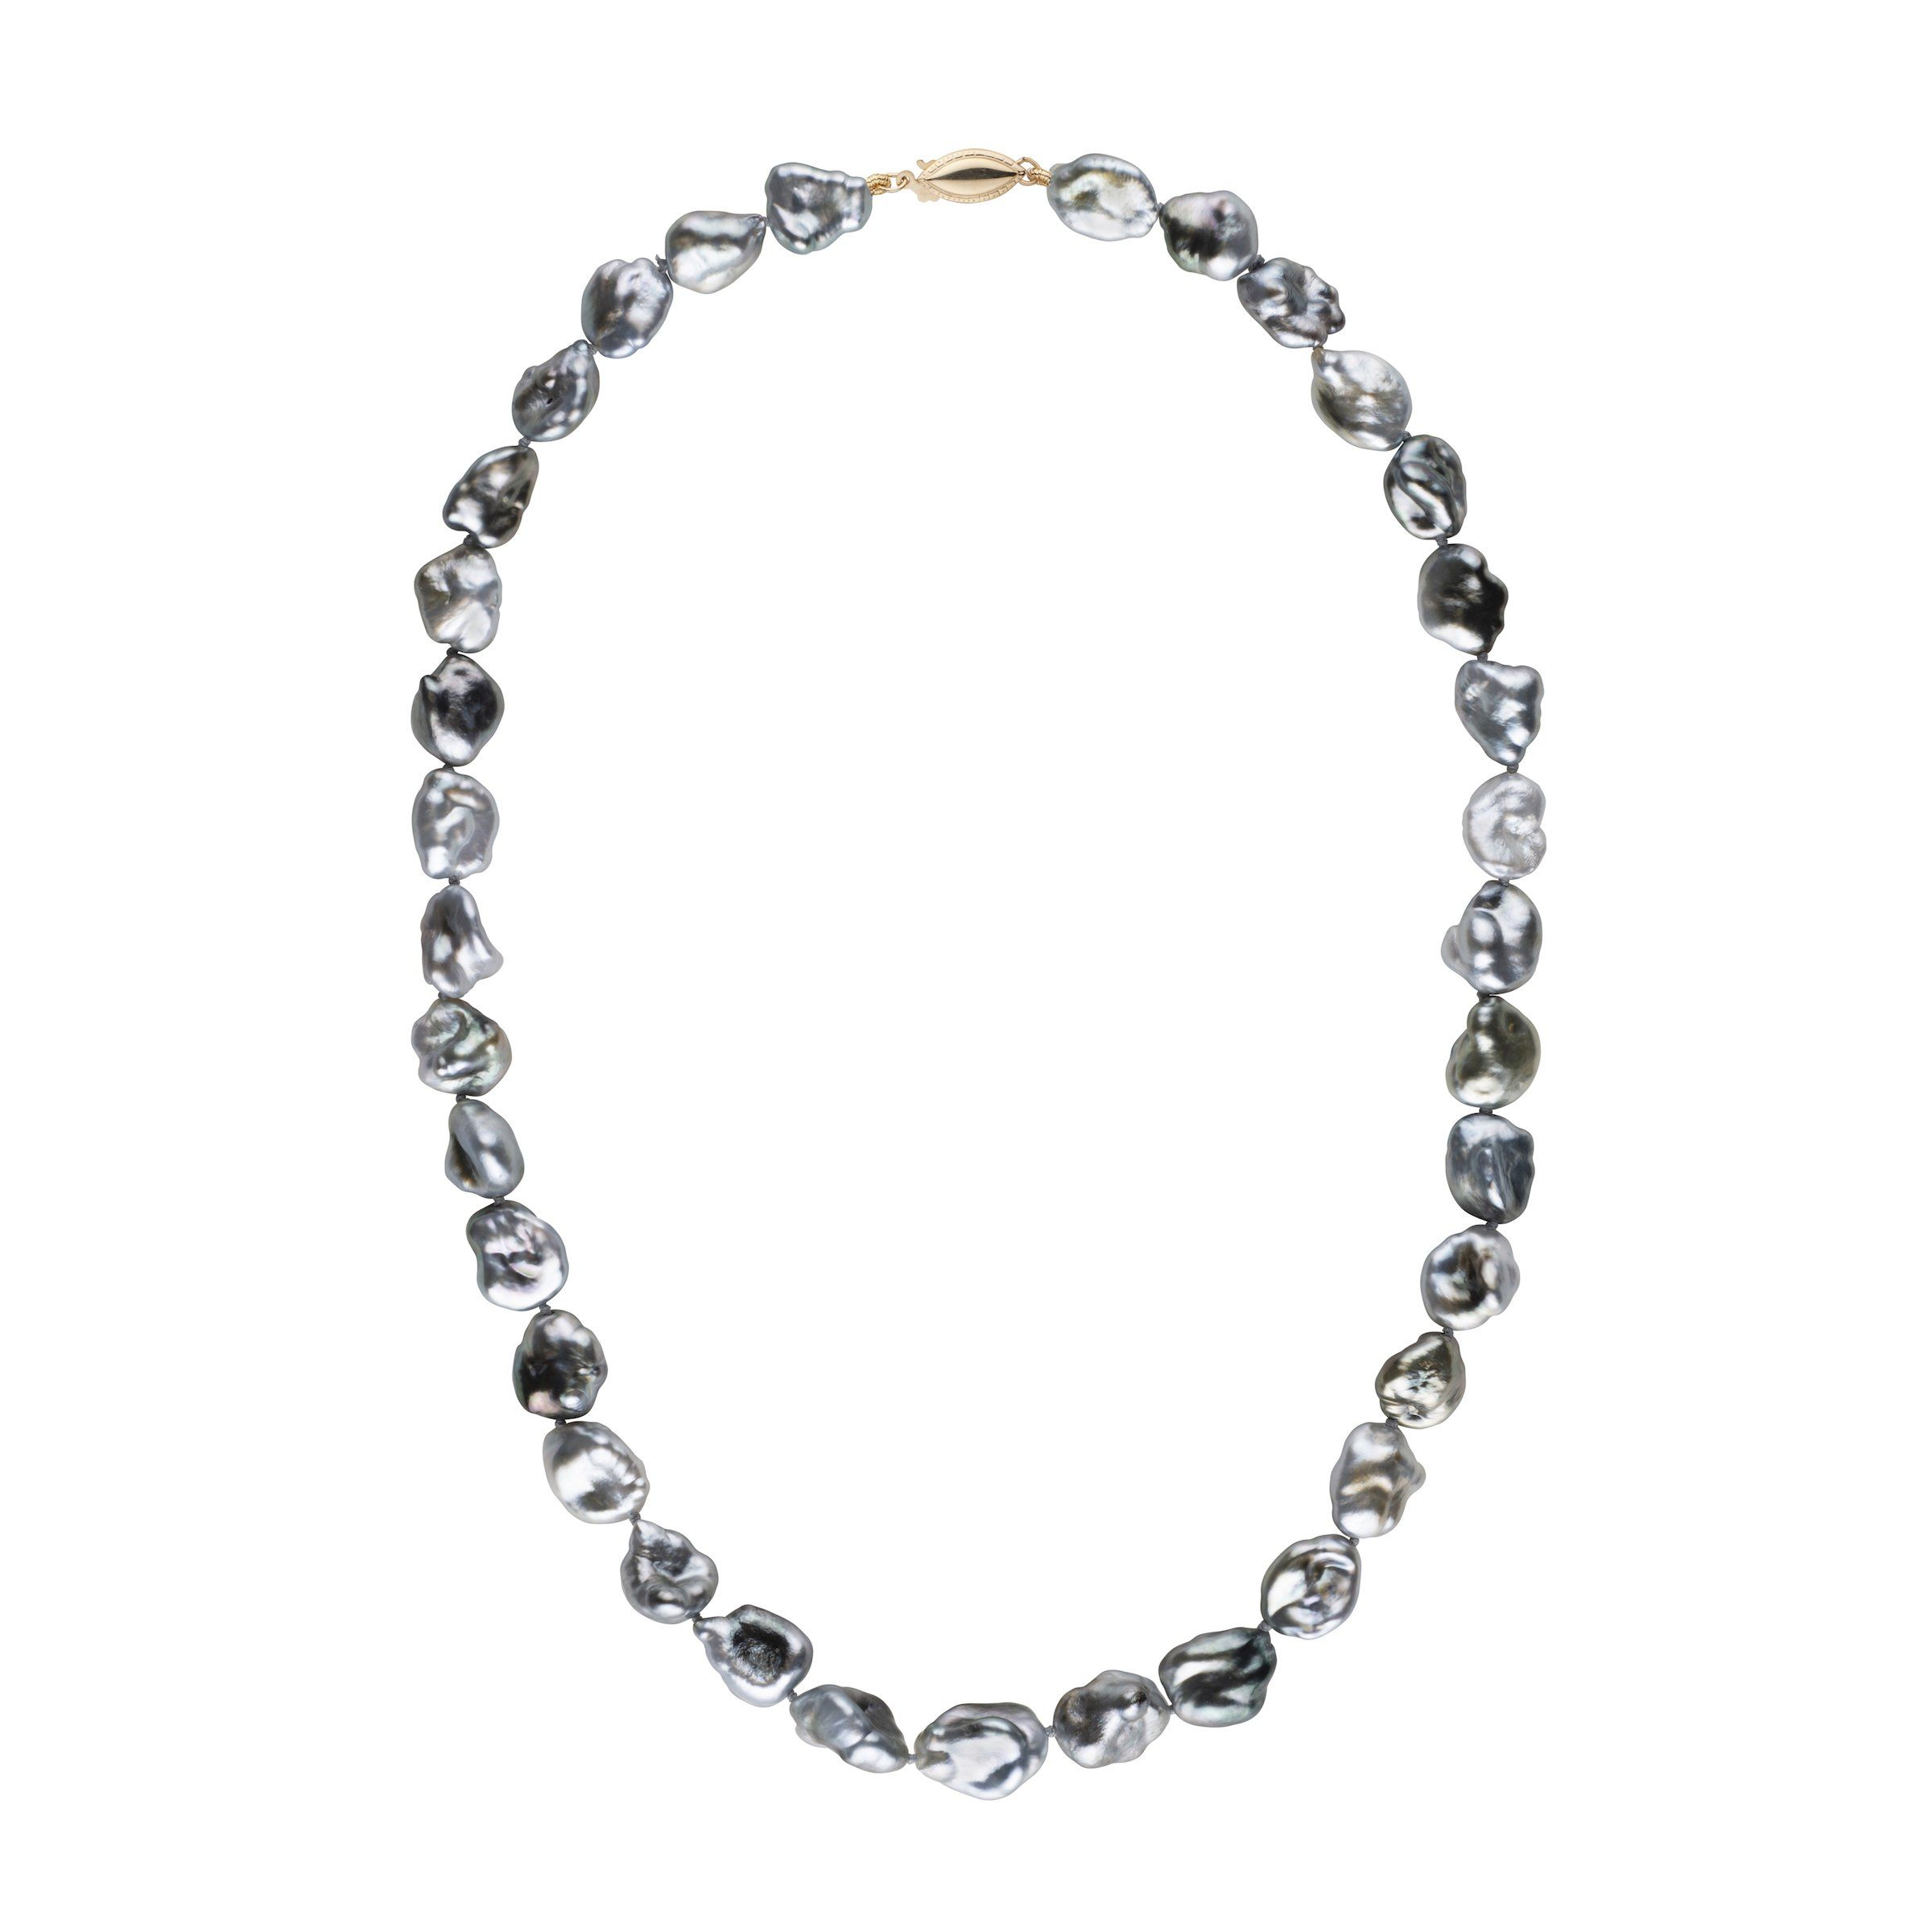 9.0-12.0 mm 18 Inch Keshi Tahitian Pearl Necklace